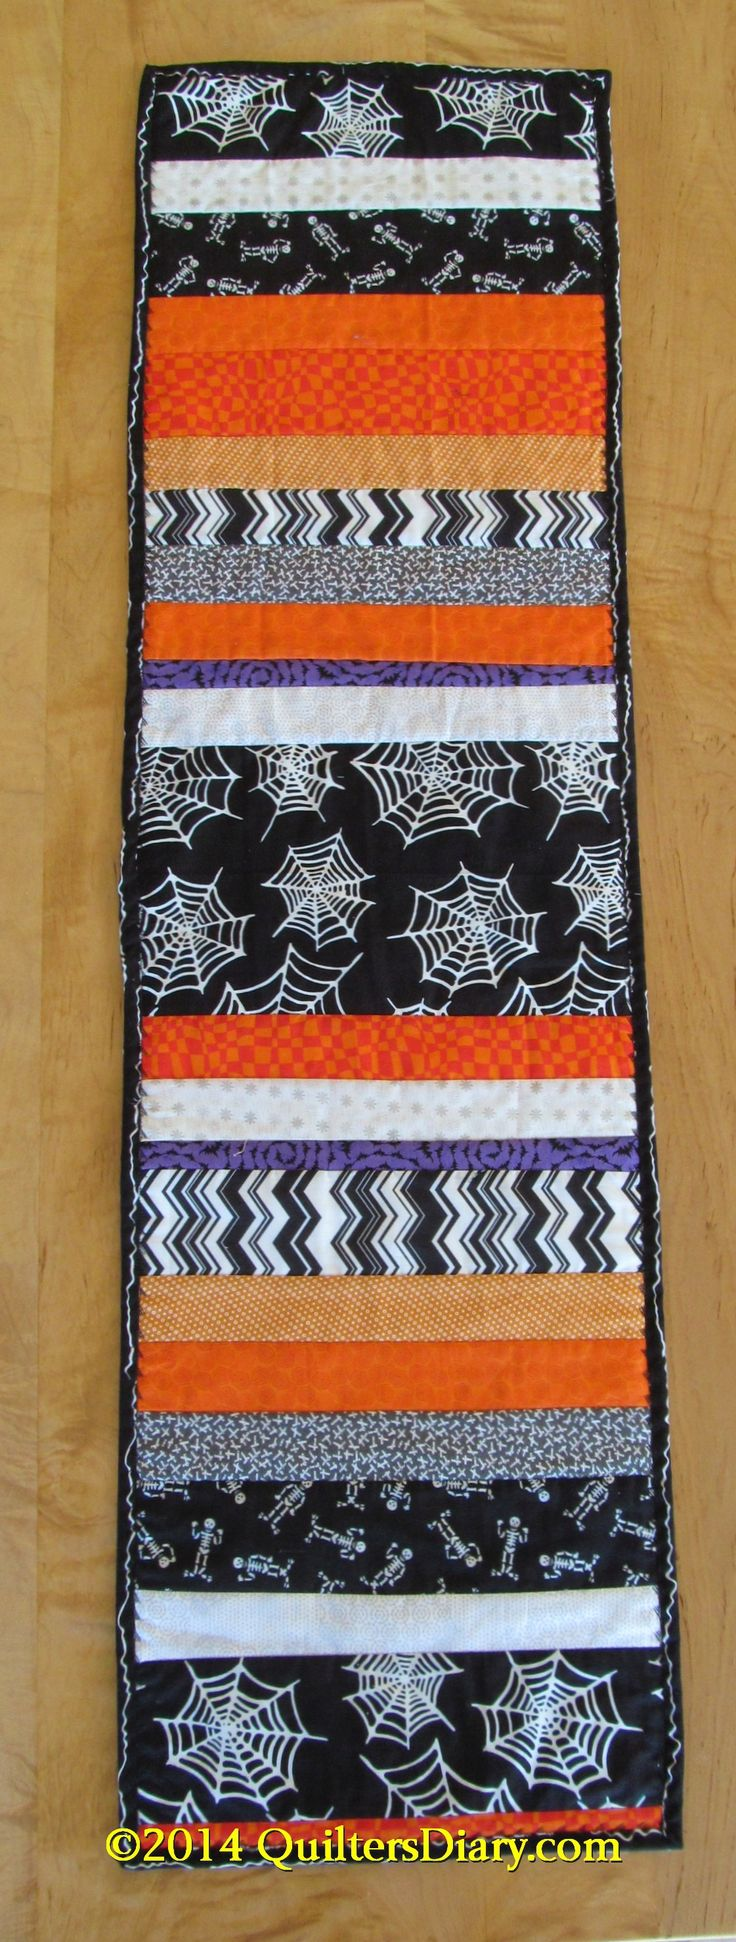 Free Easy Halloween Quilt Patterns ~ cafca. info for .